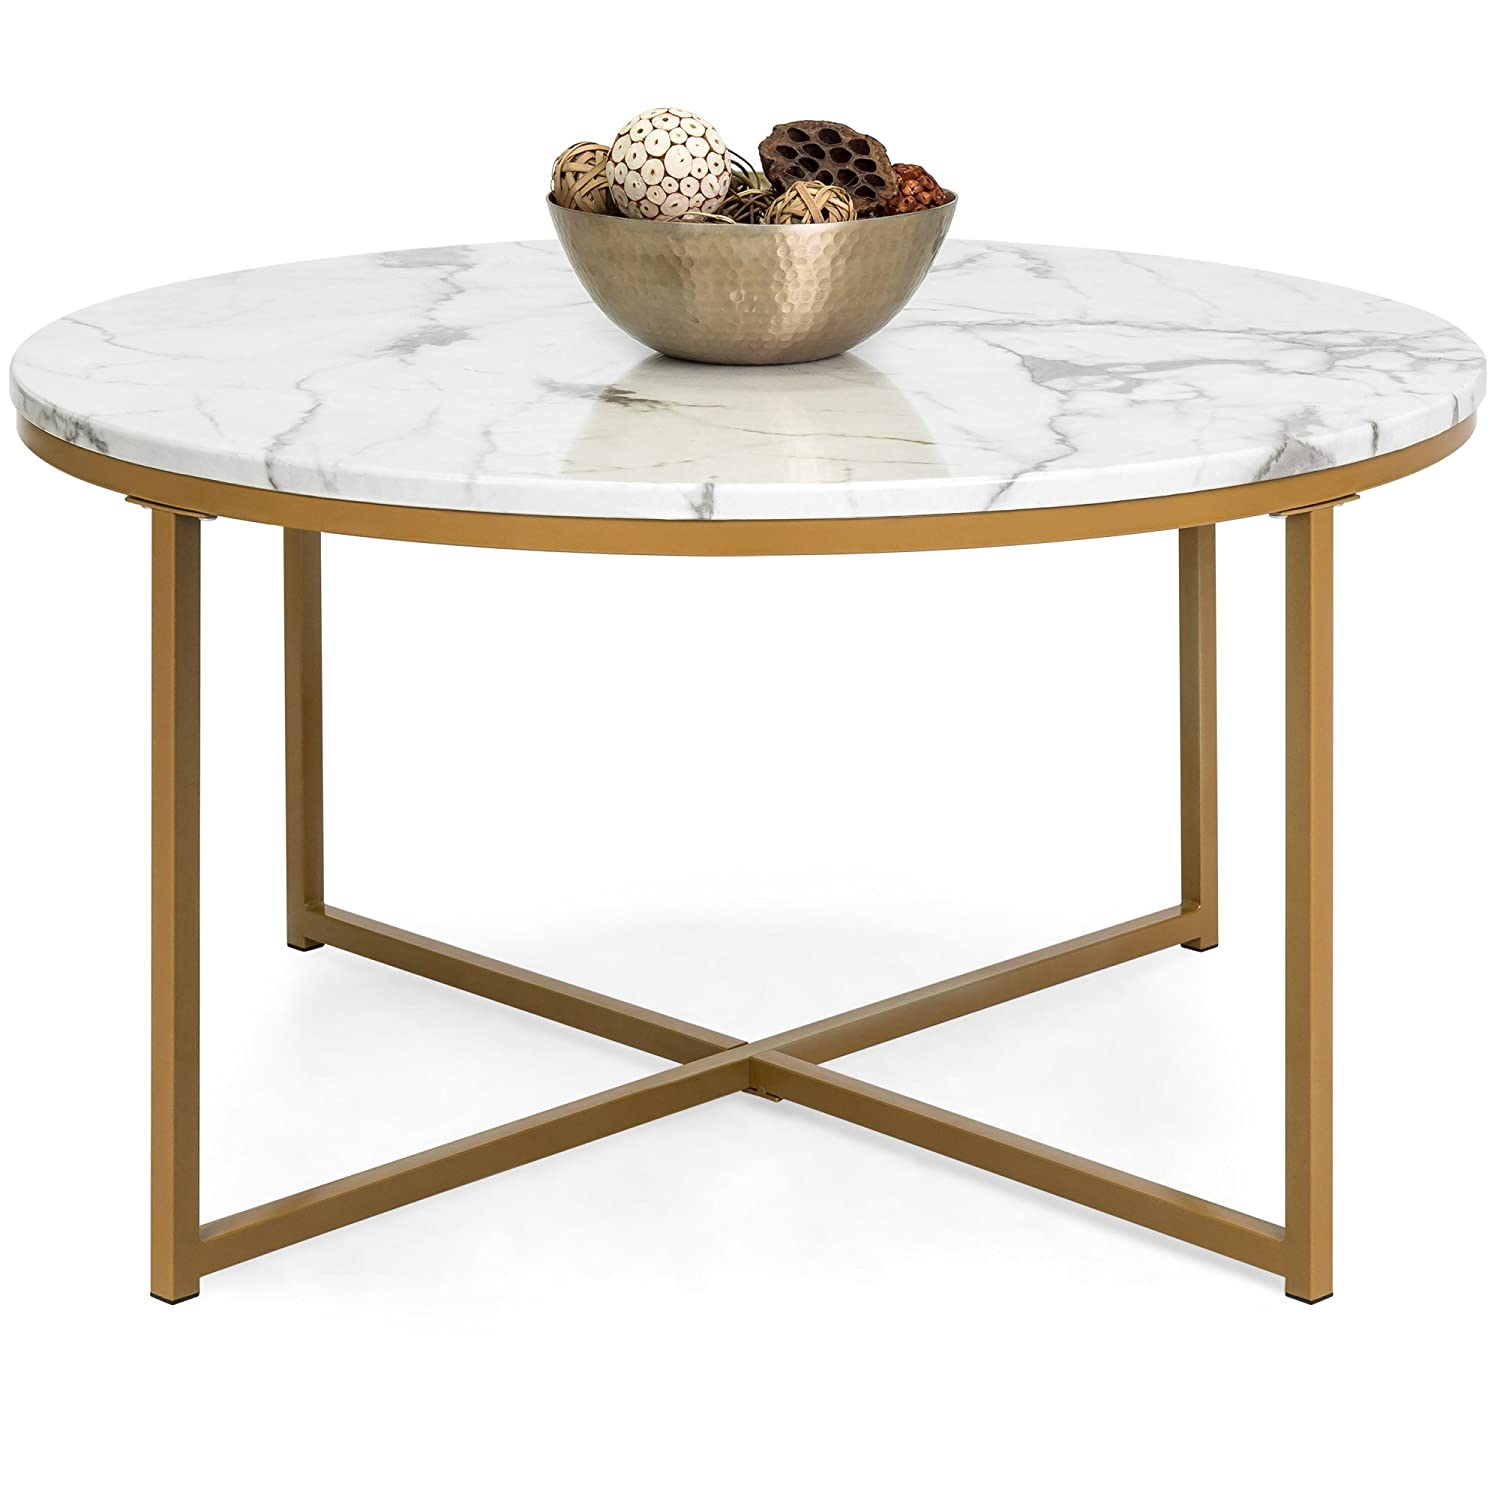 Amazon com best choice products 35in modern living room round accent side coffee table w metal frame faux marble top white gold kitchen dining